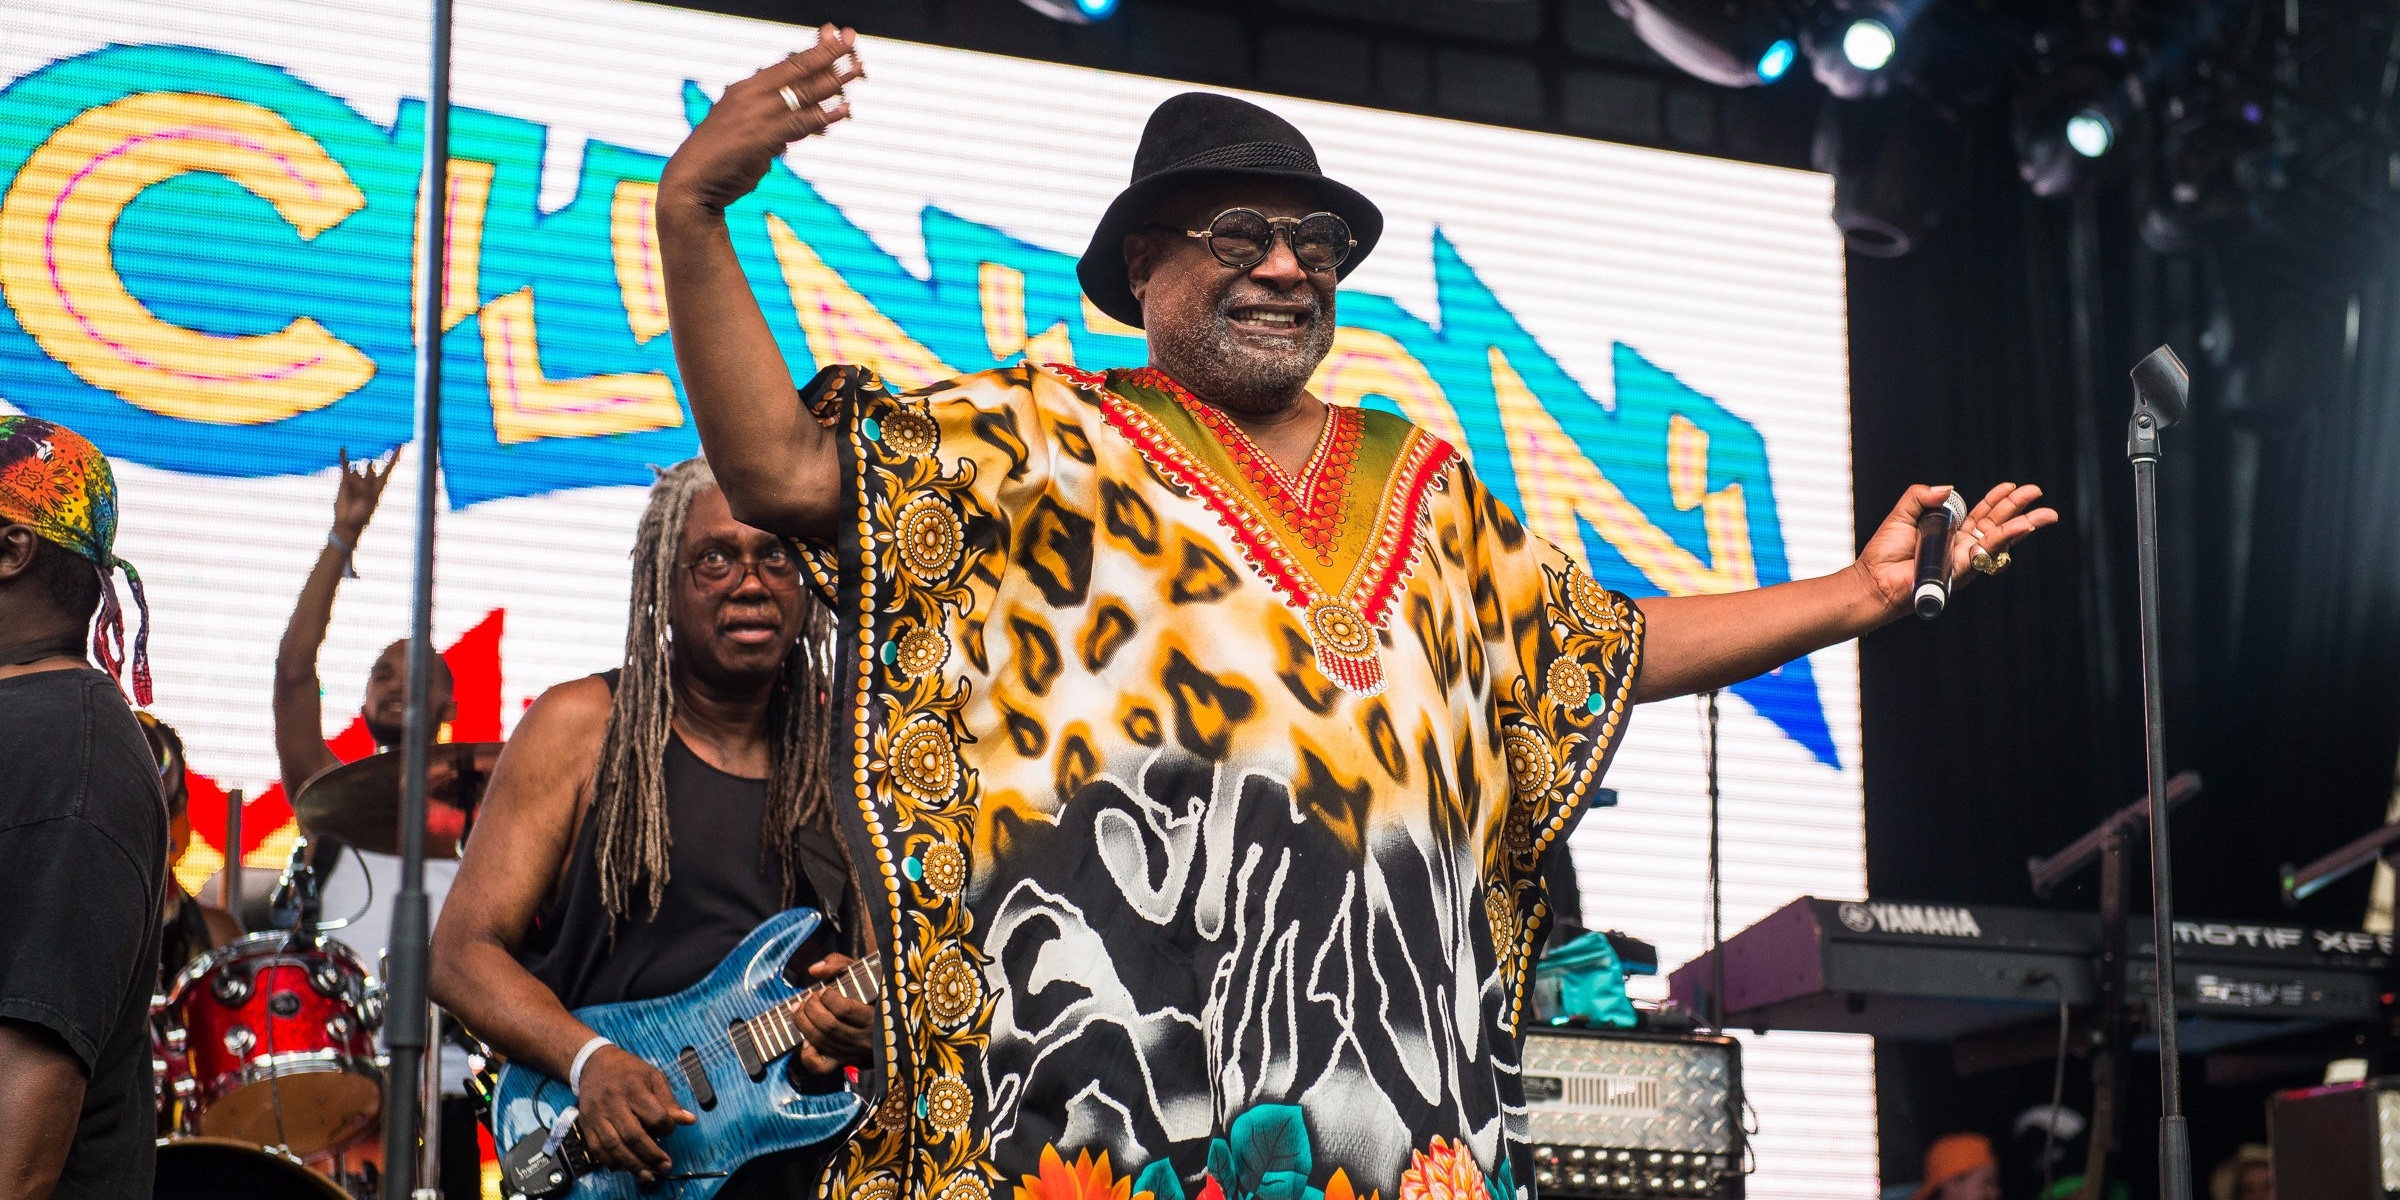 WATCH: George Clinton catches up with old friends The Sugarhill Gang over drinks in Singapore